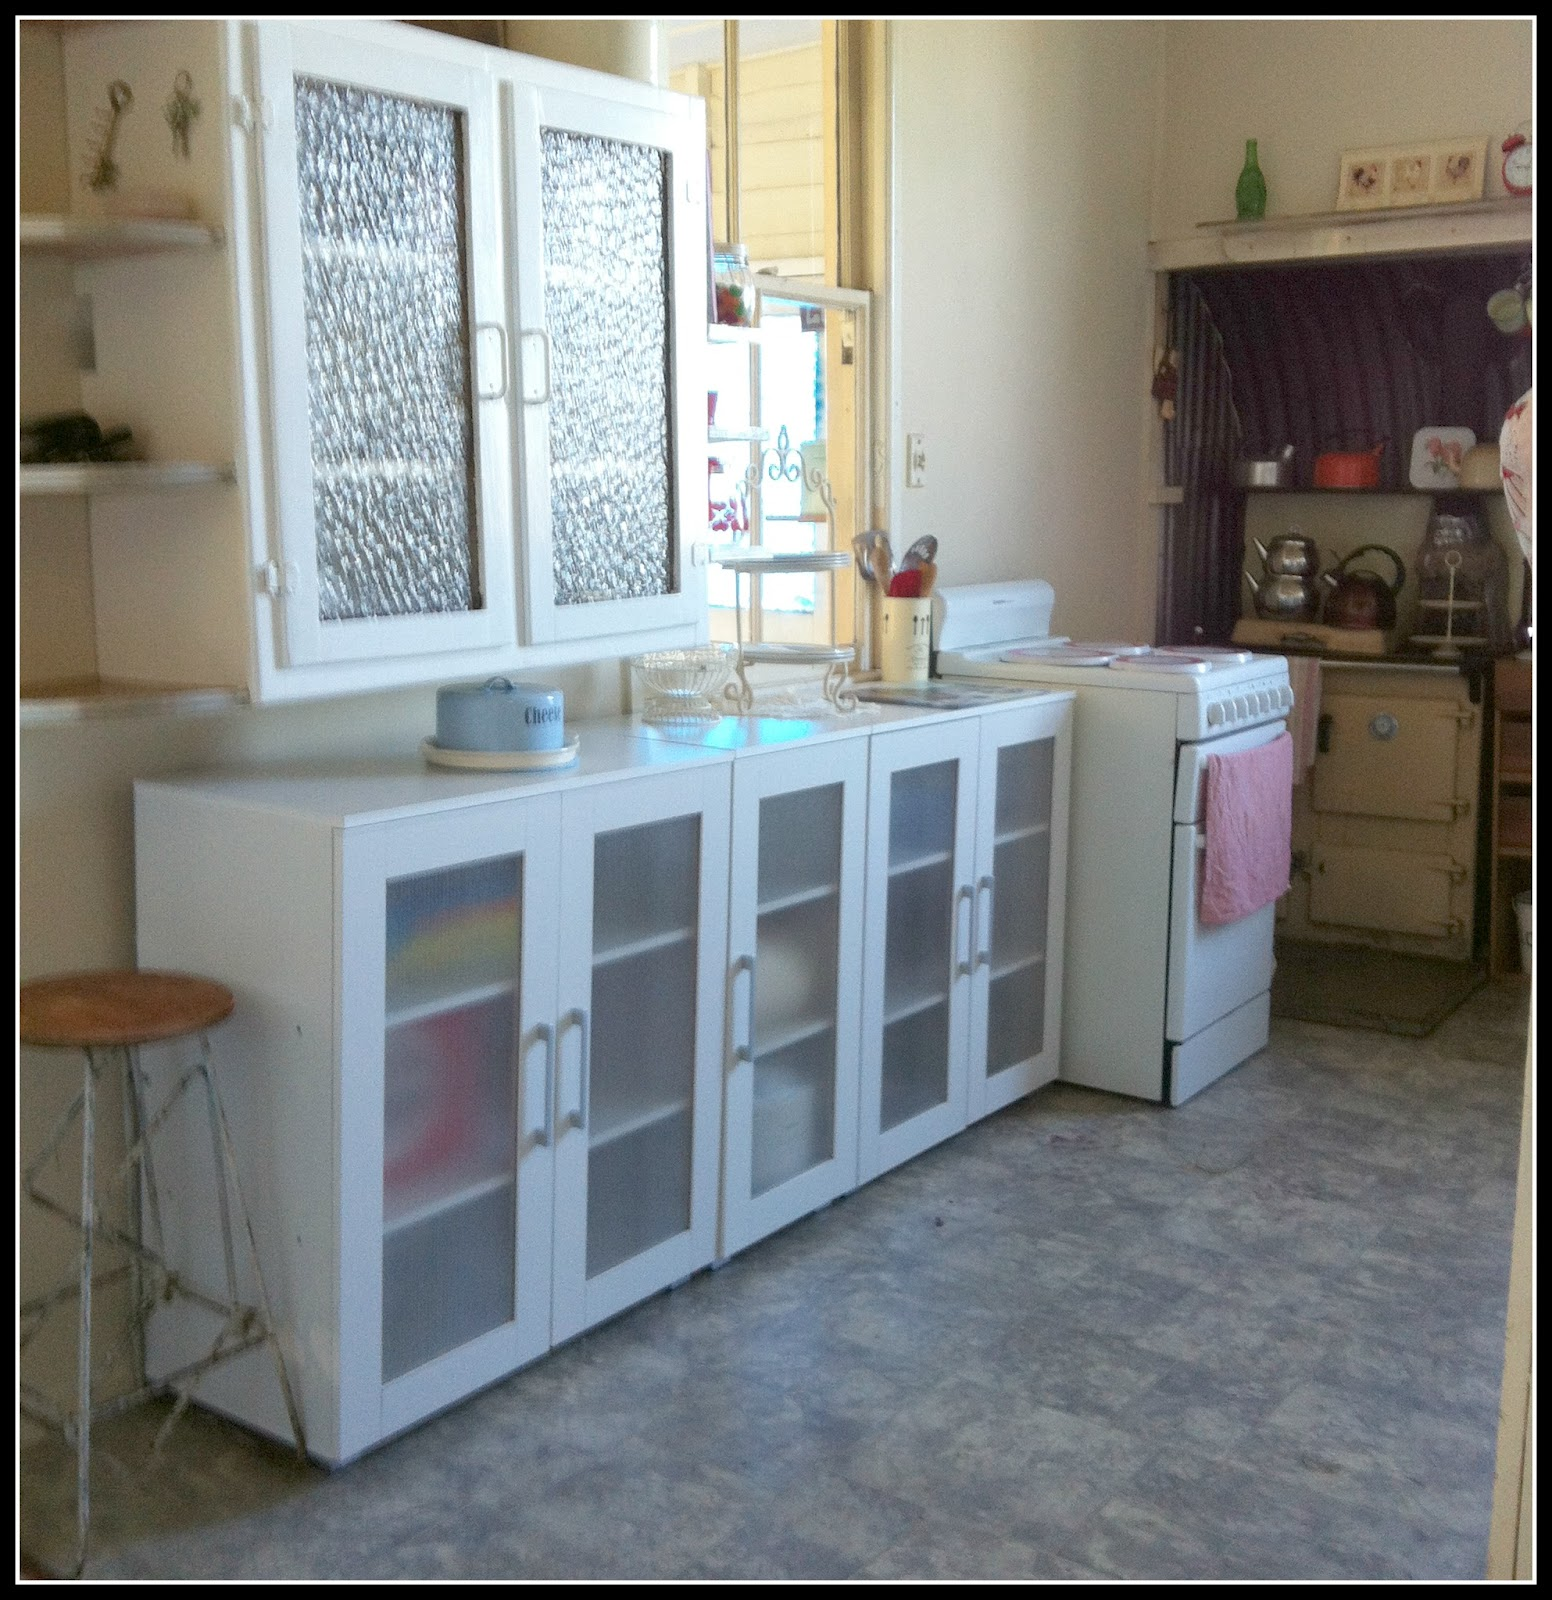 thebouselife: A little kitchen Reno in this shabby old cottage.